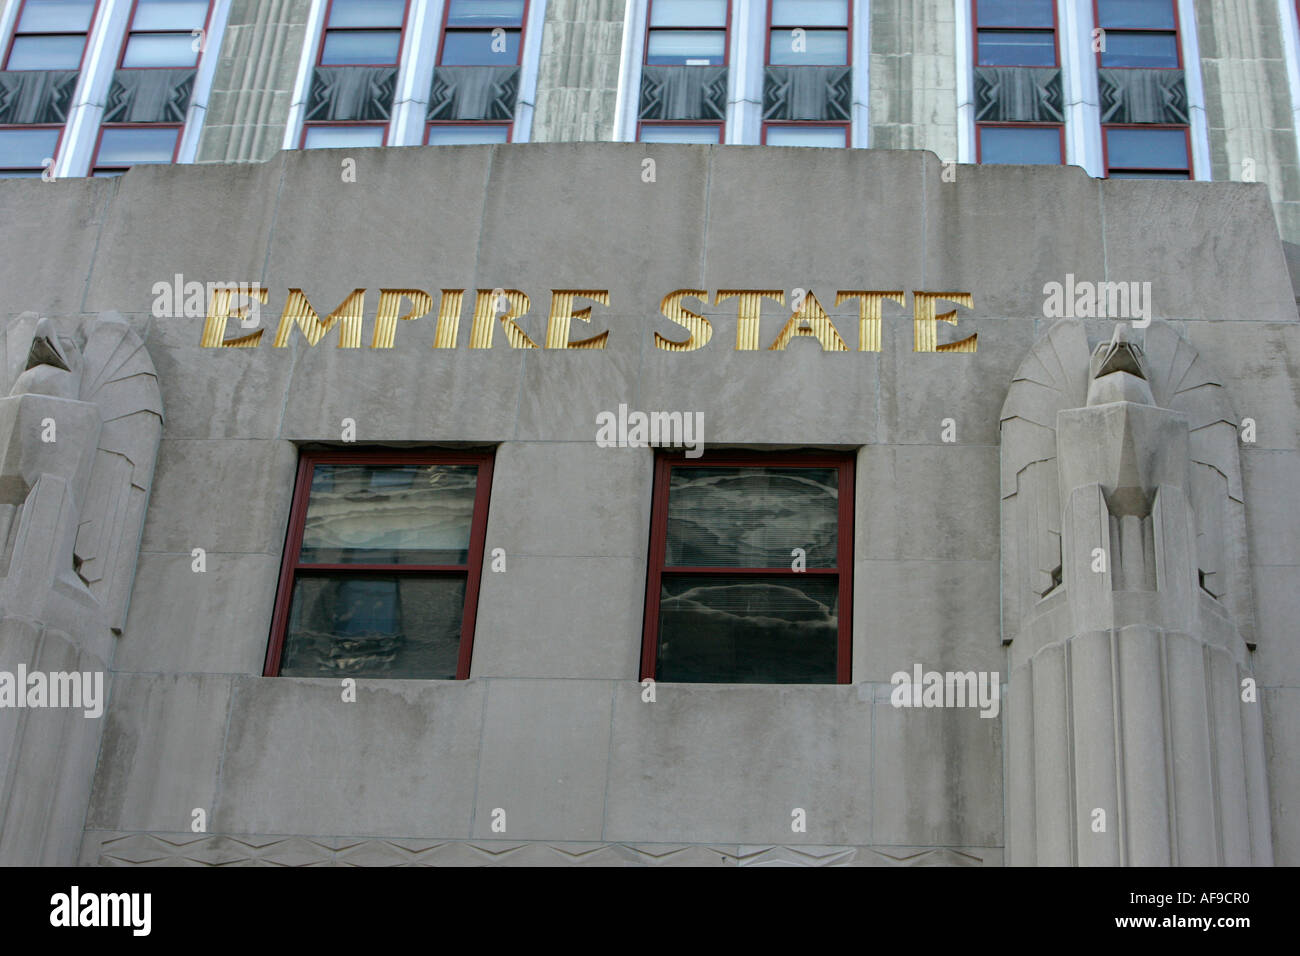 Empire state building nameplate art deco gold writing new york city new york USA - Stock Image